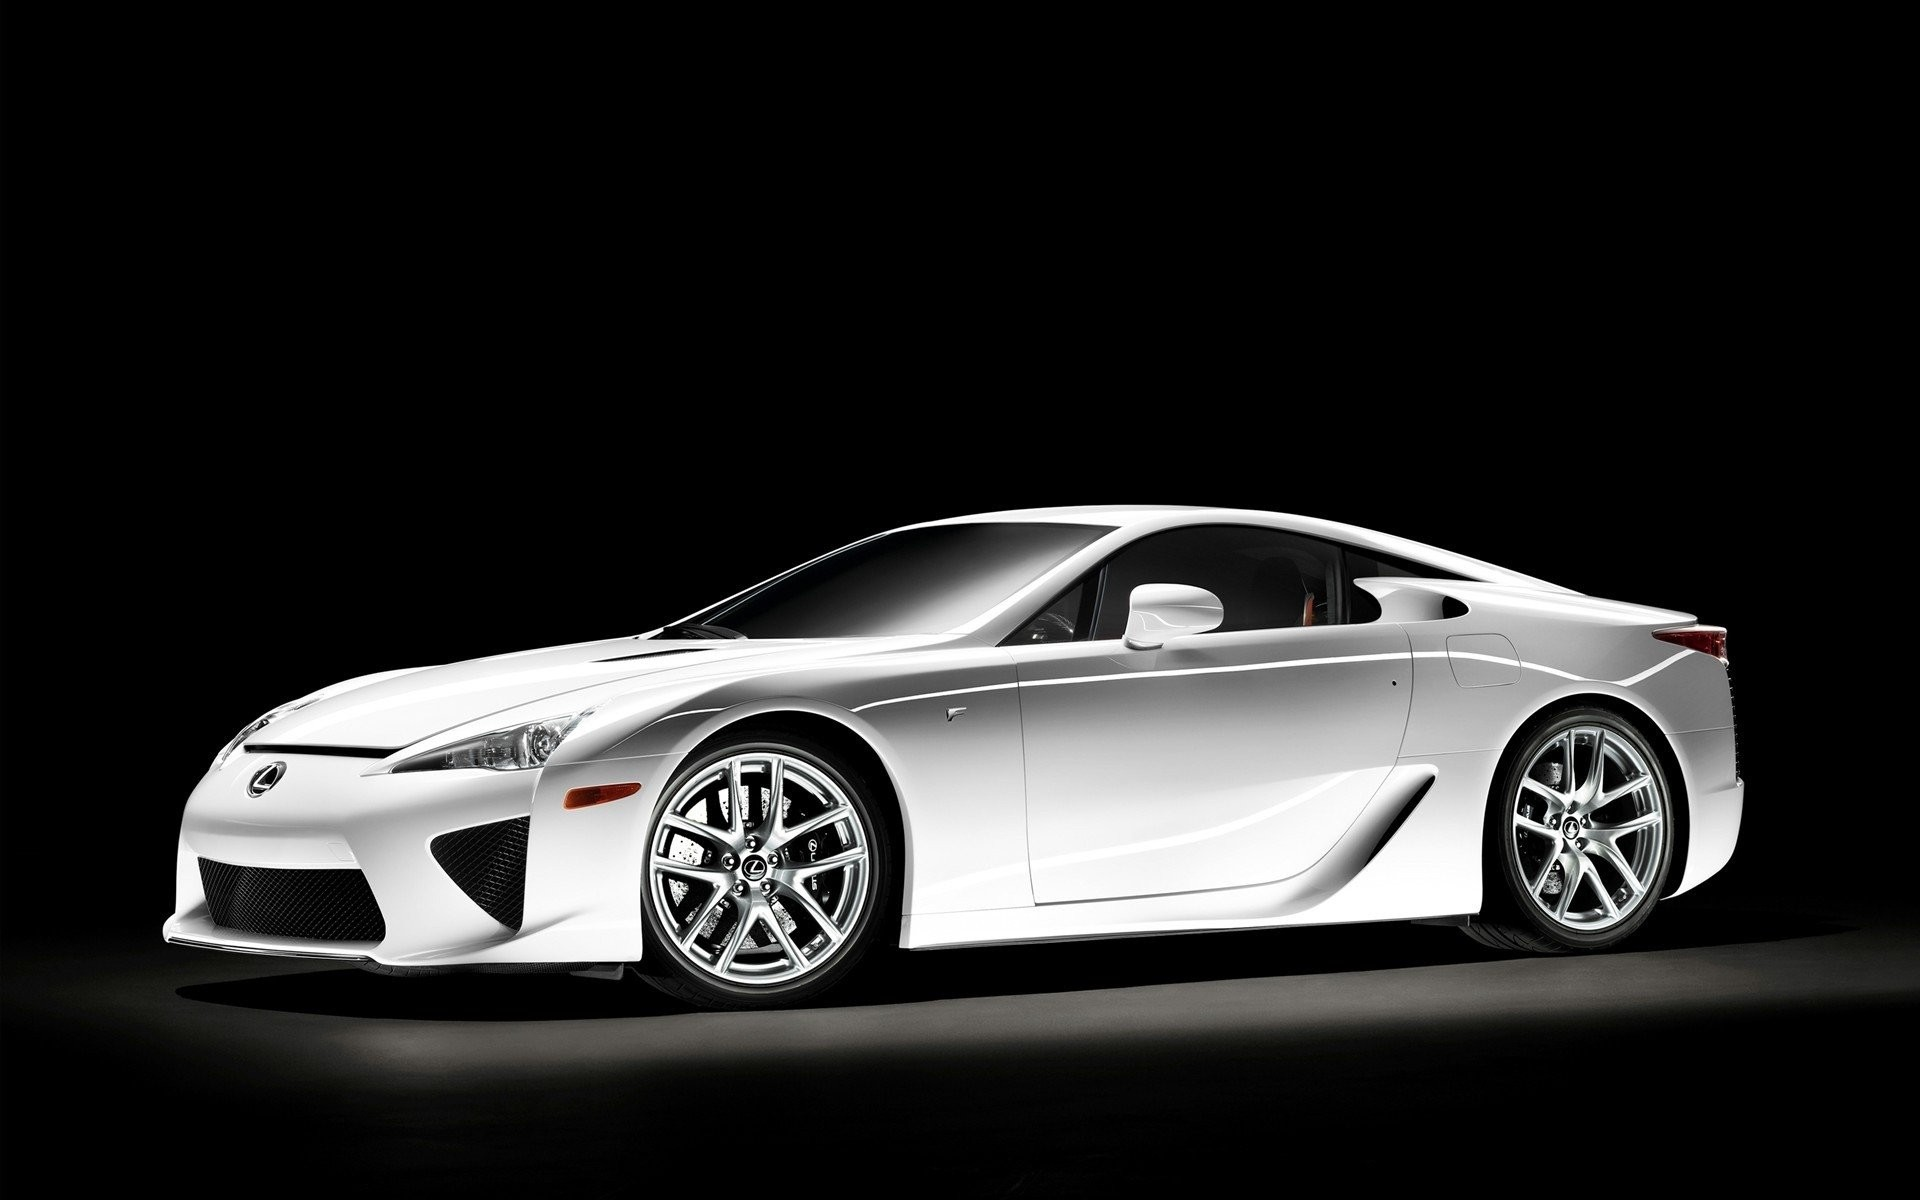 1920x1200 Cars Lexus vehicles Lexus LFA black background wallpaper |  |  234005 | WallpaperUP